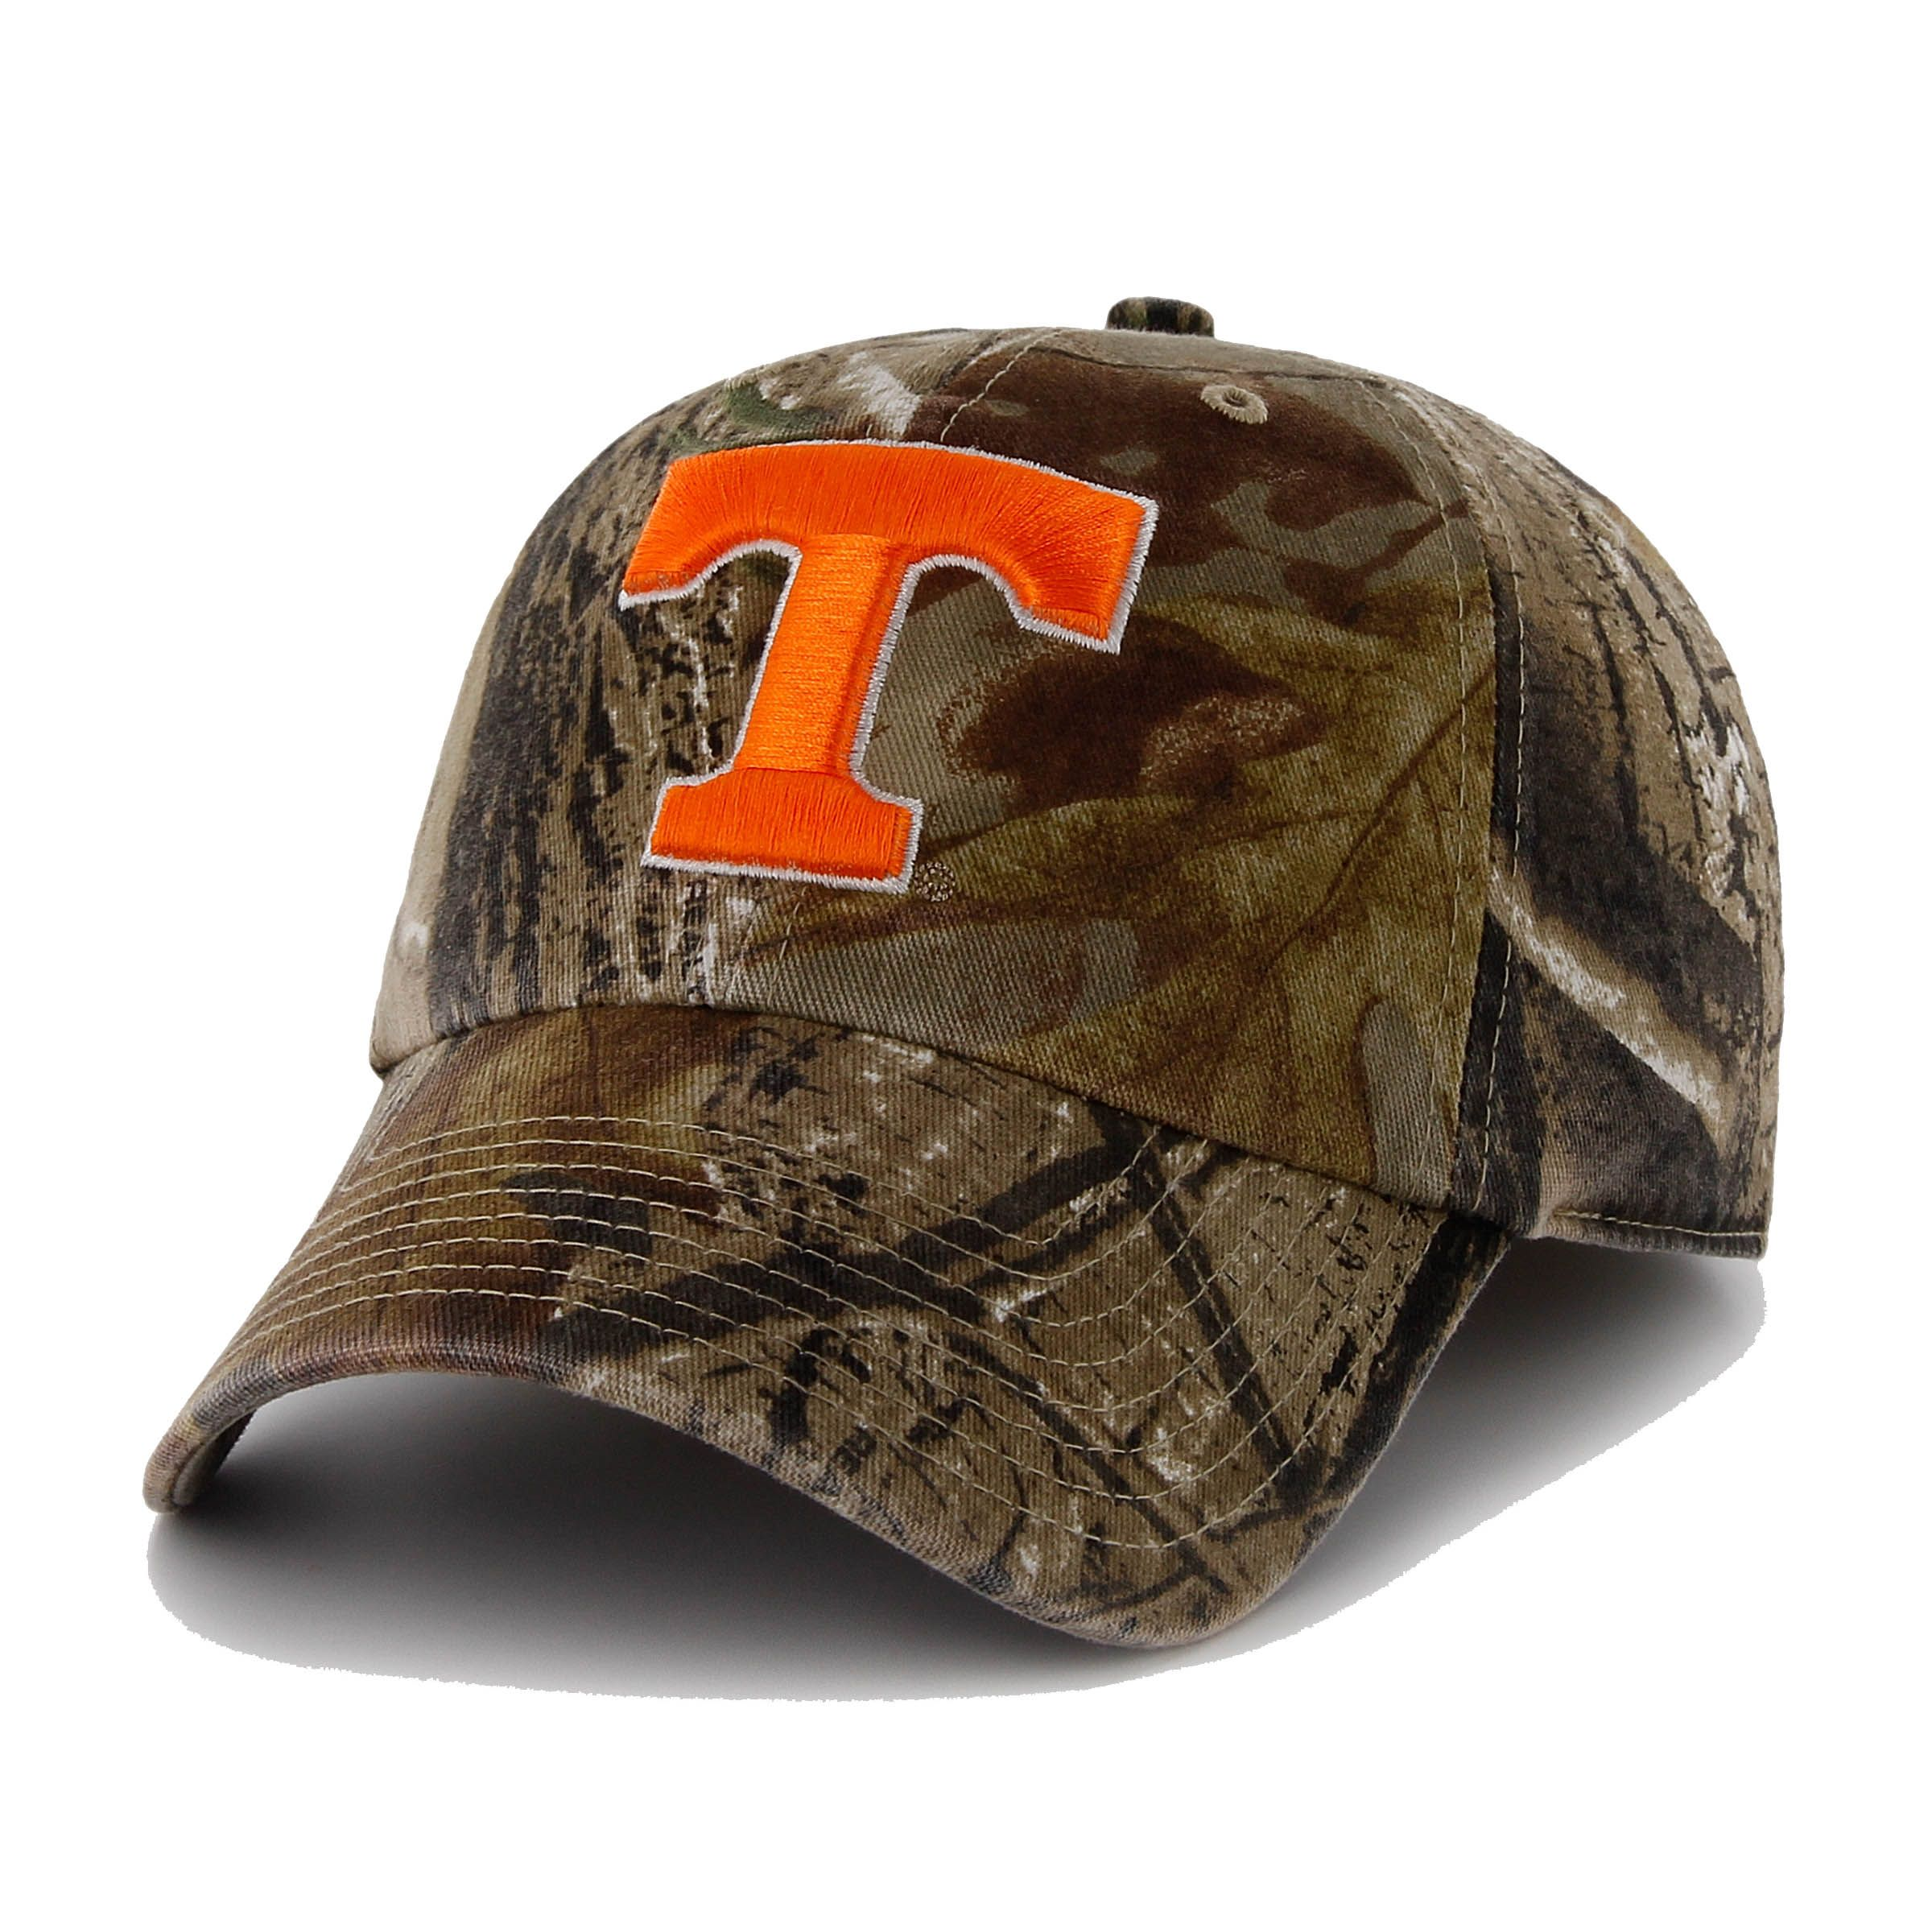 new products 068be d3393 Tennessee Volunteers 47 Brand Camo Clean Up Adjustable Hat (Camo Orange)